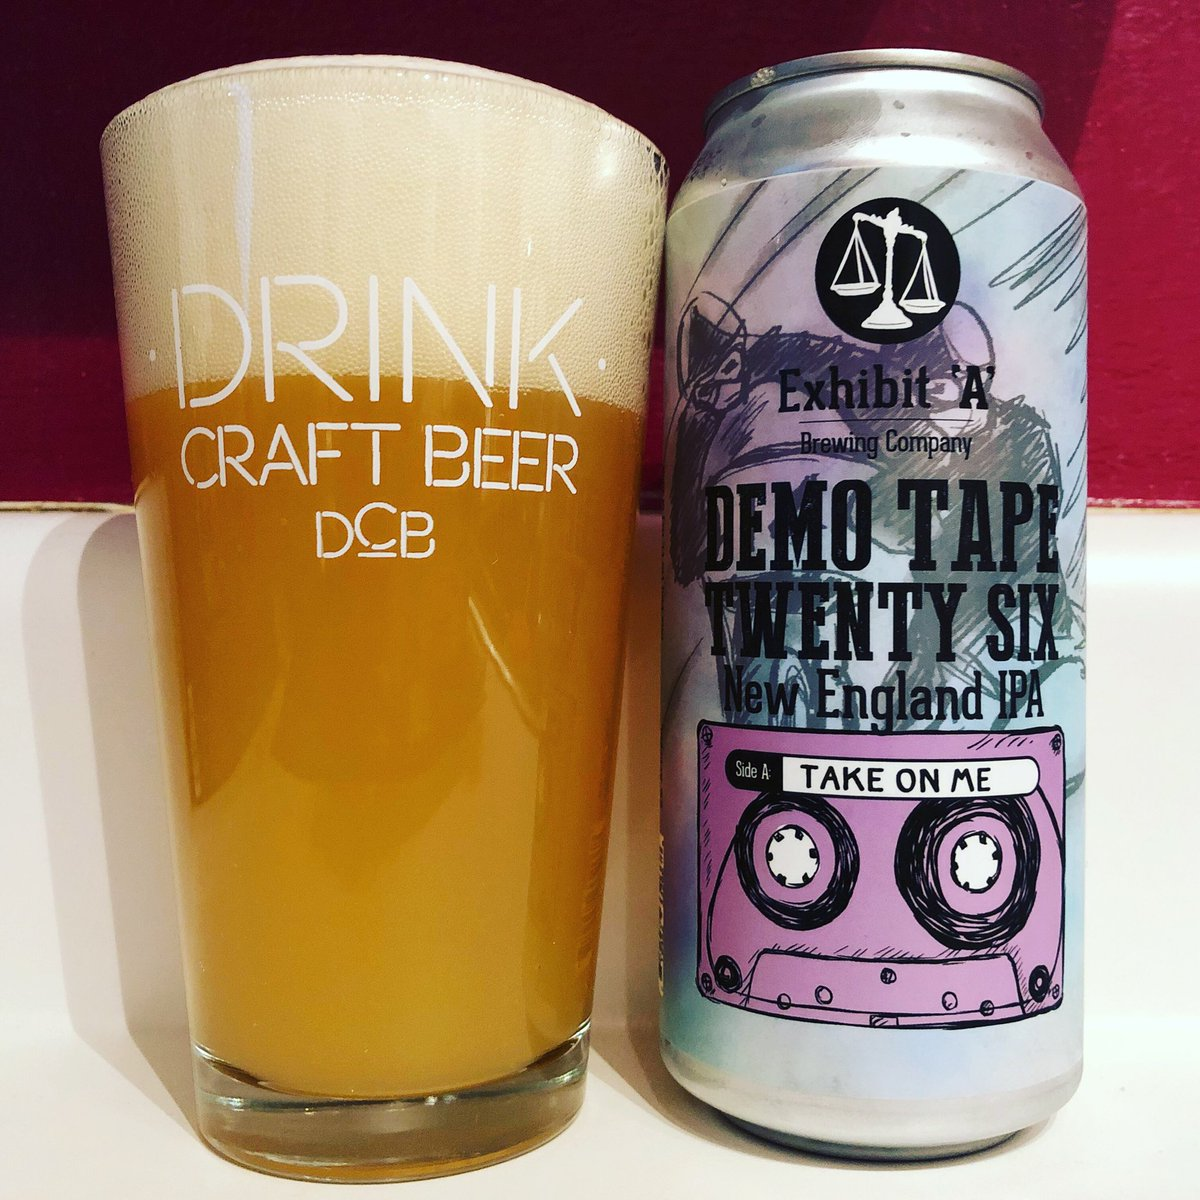 A nose full of tropical fruit followed by a creamy citrus flavor. Take me on! @exhibitAbrewing #drinklocal #MassBrewMonday